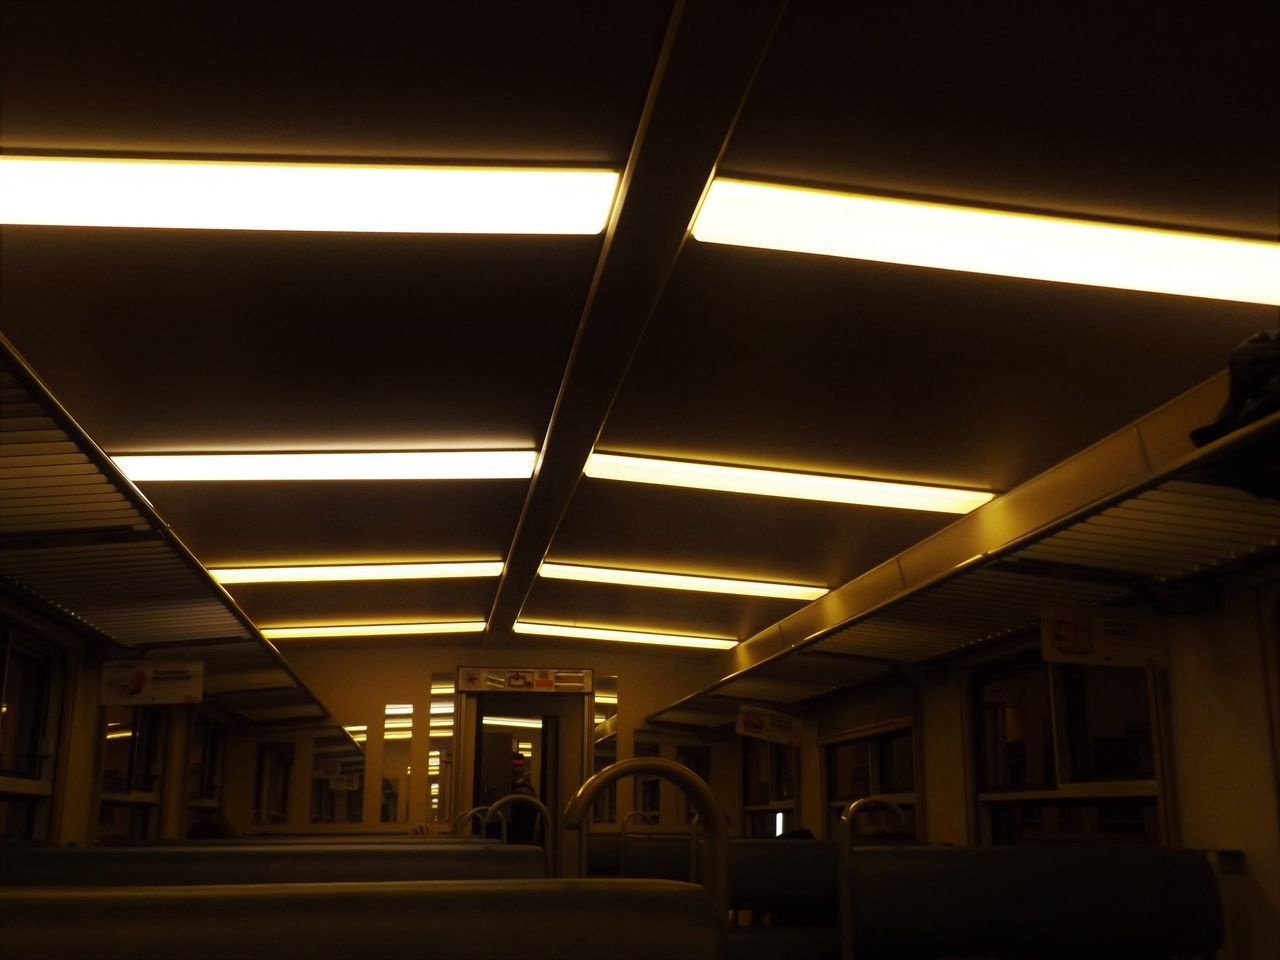 Lit. Low Light No Edit/no Filter Ceiling Dark Design Train On Board Diminishing Perspective Electric Lamp Electric Light Illuminated In A Row Interior Lamp Architecture Column Light Lighting Equipment Lit Modern Repetition The Way Forward Railway